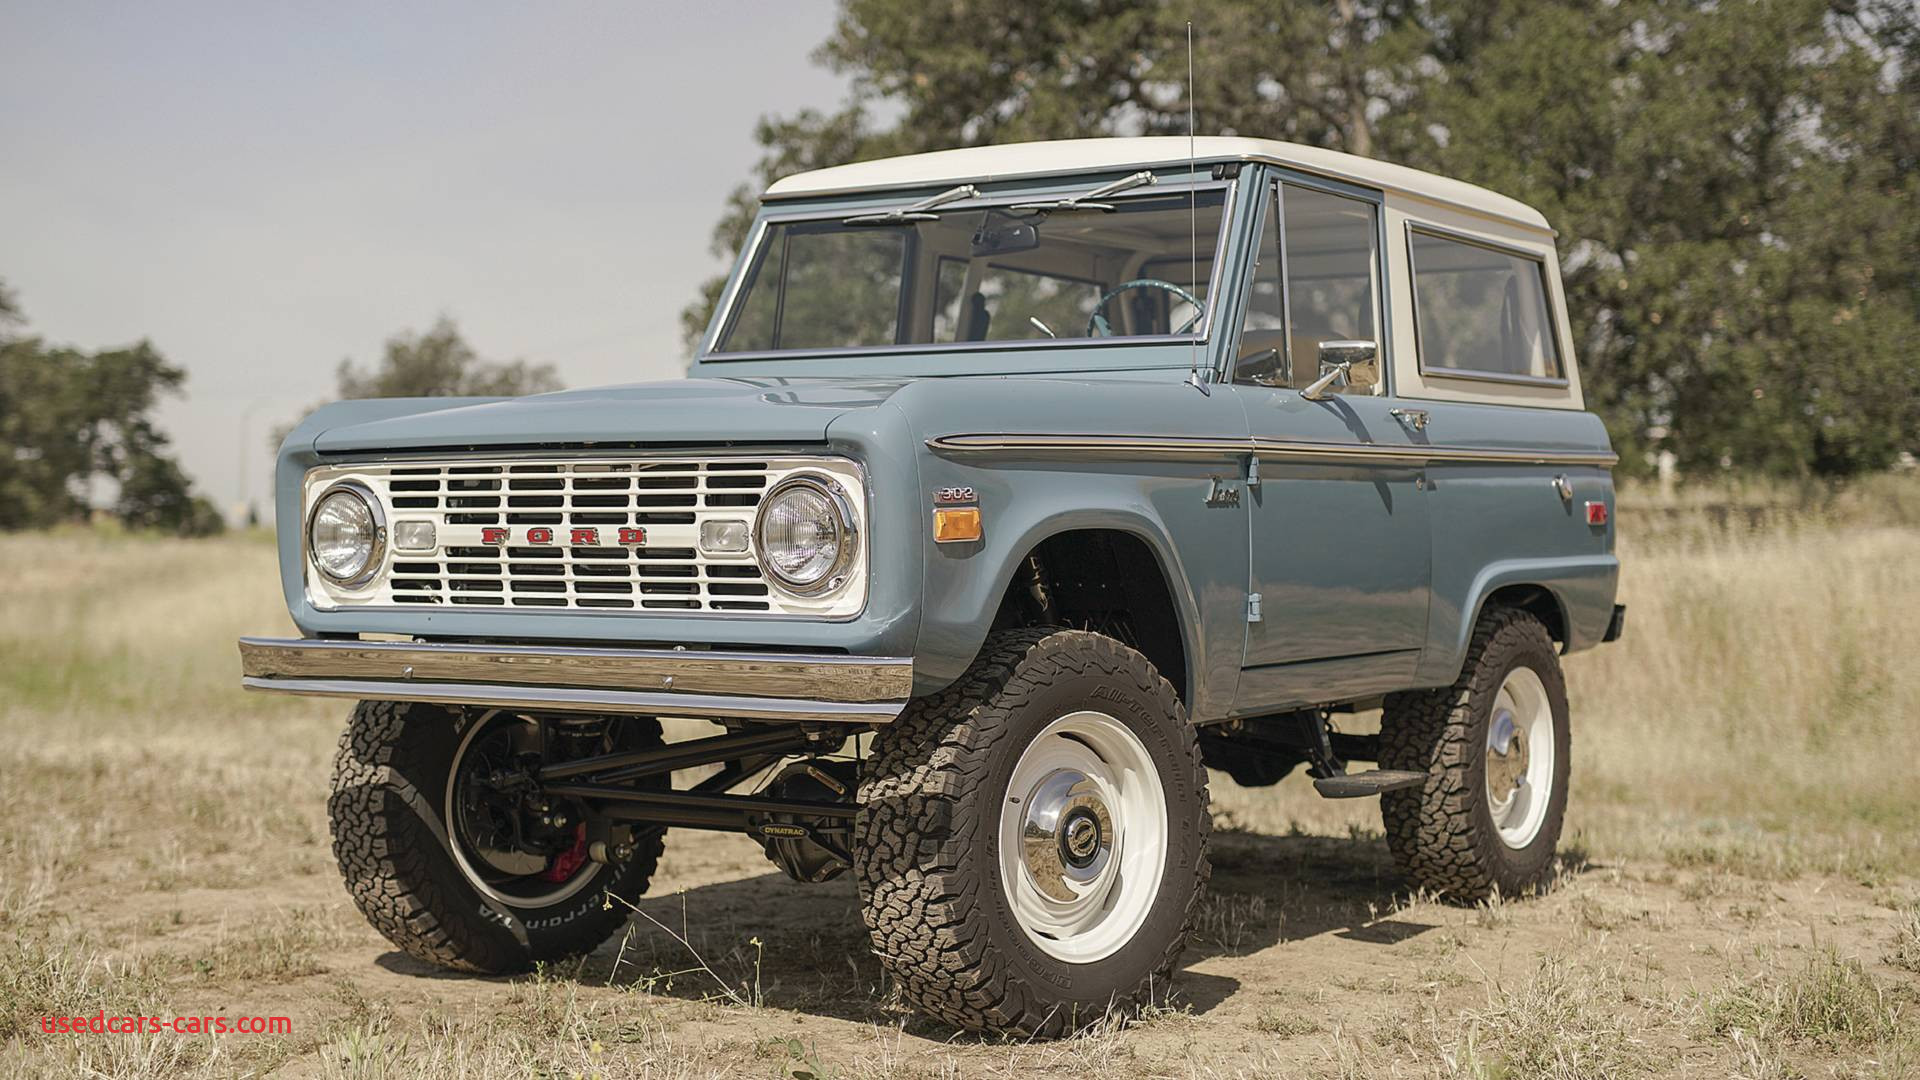 Ford Bronco 2020 2 Door Interior Best Of Icon Goes even More Retro with New Old School Broncos